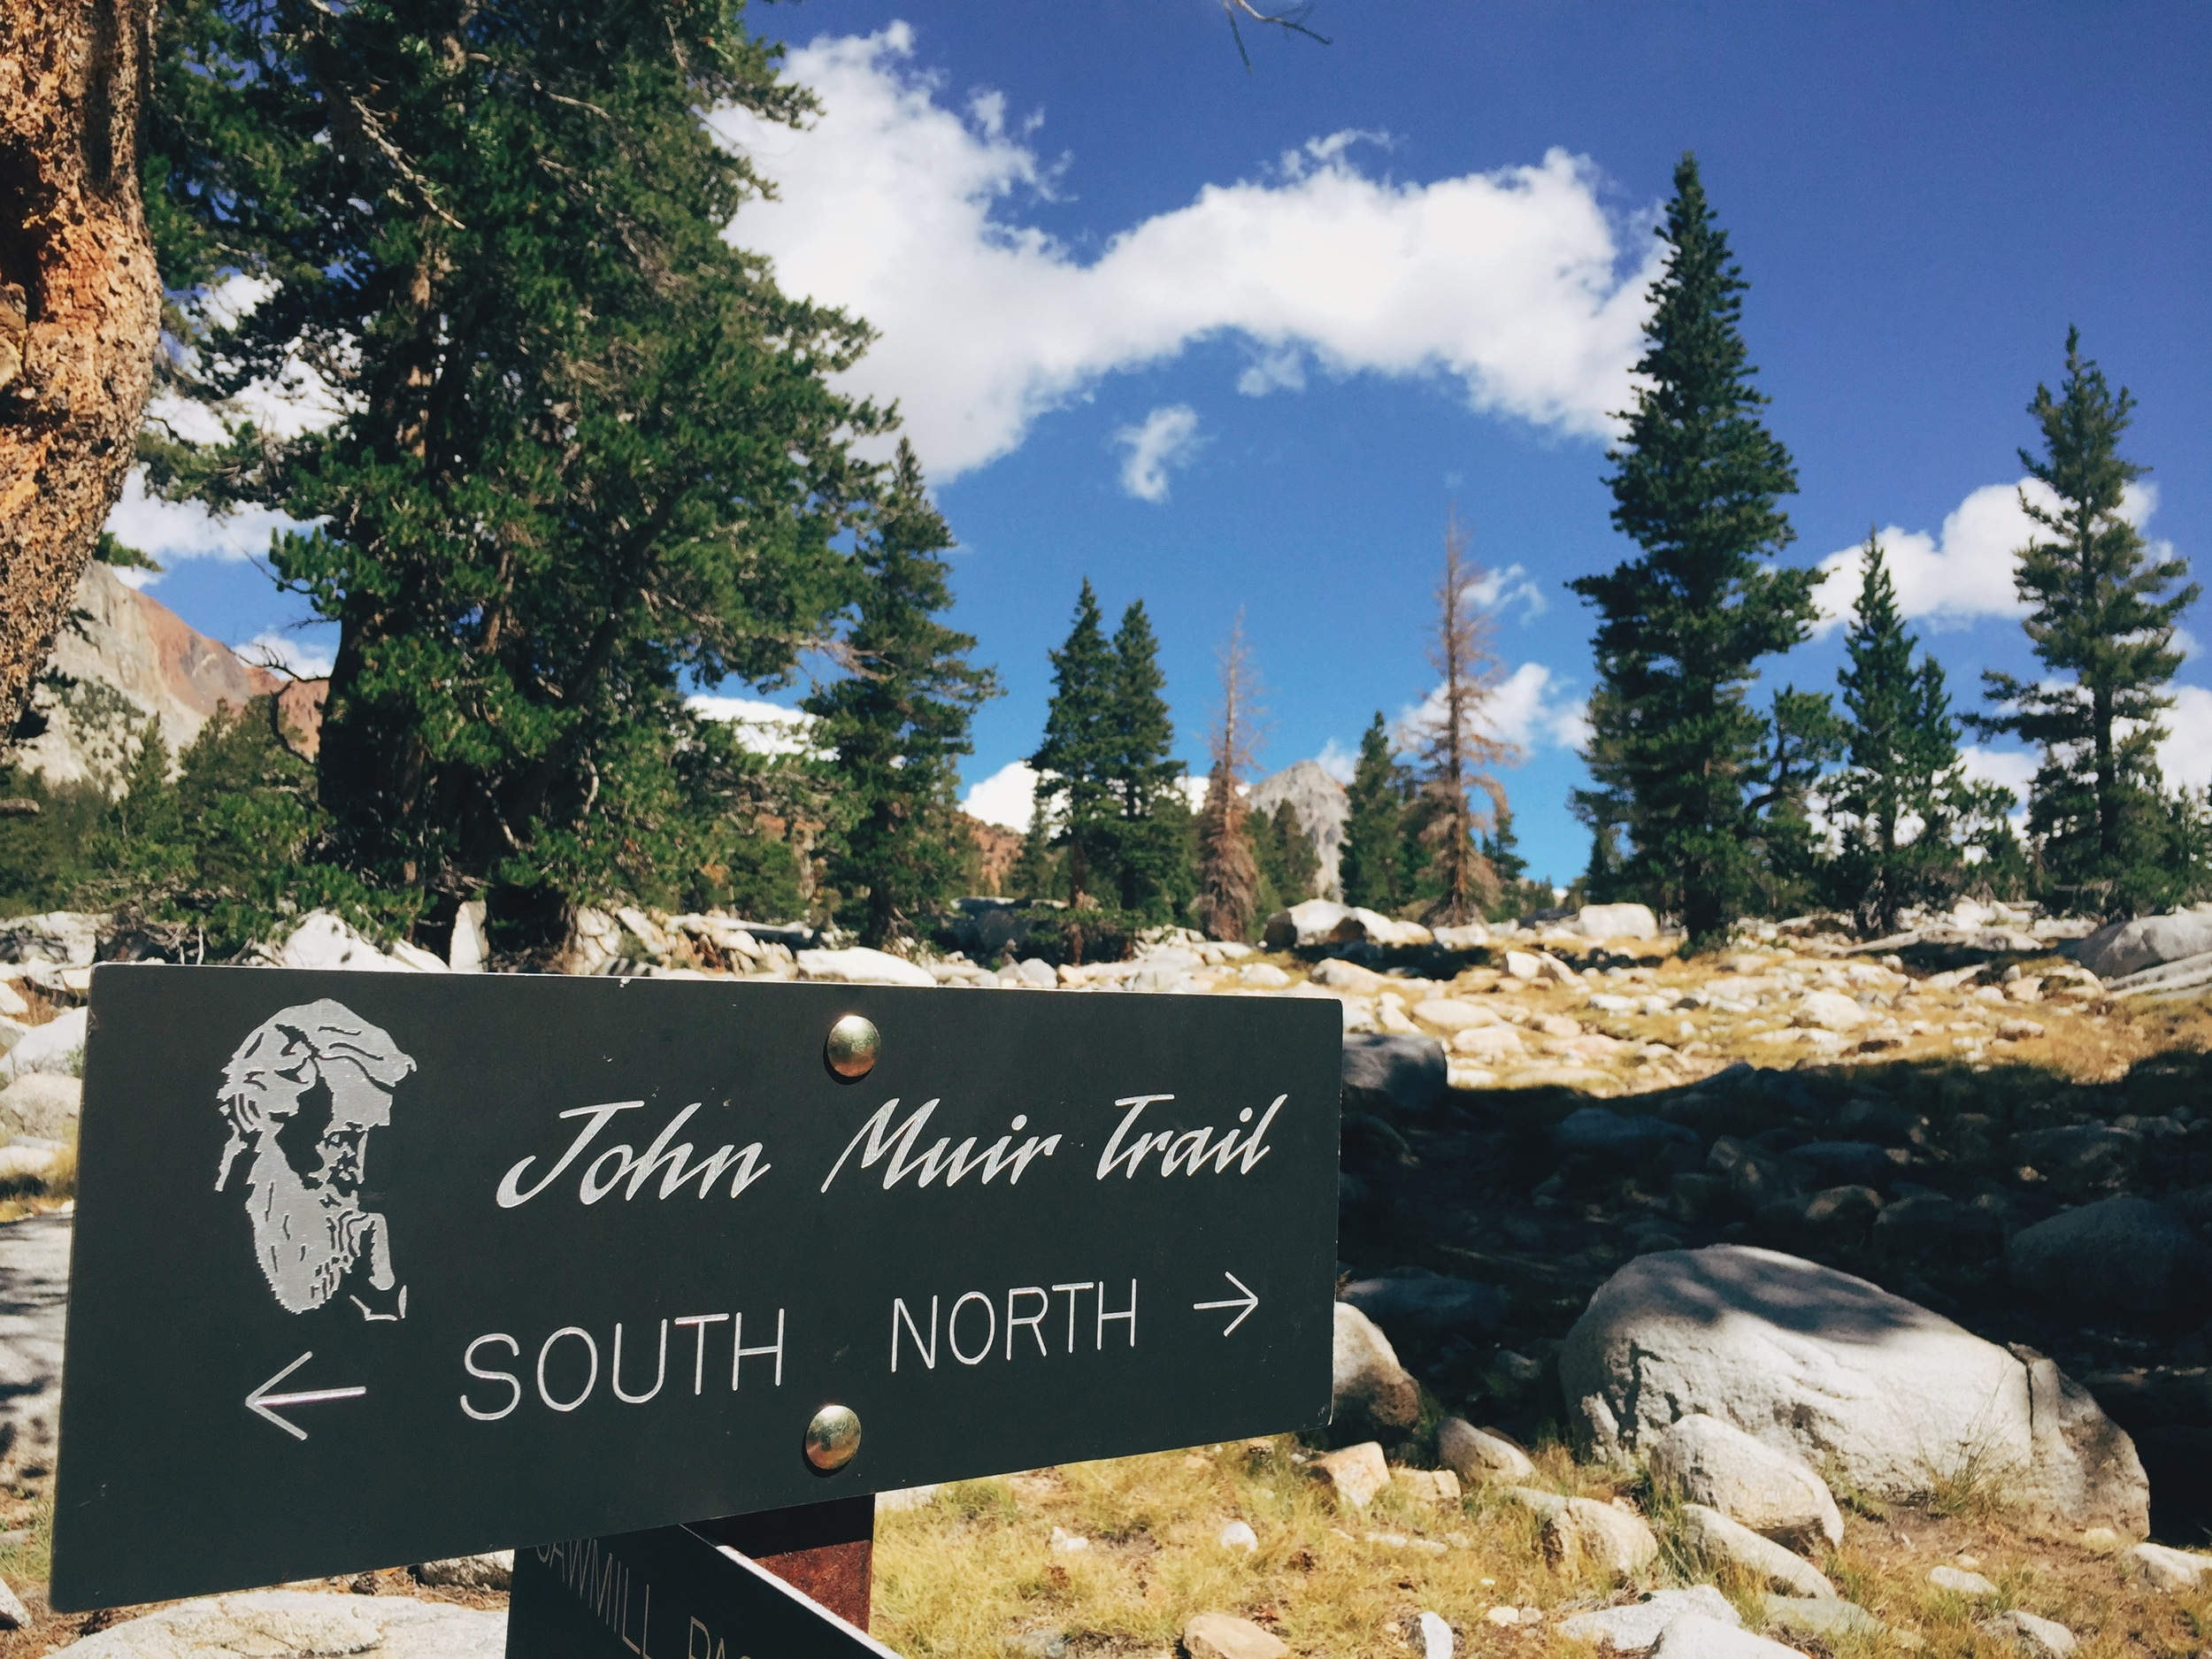 At Sawmill Pass junction, a few miles south of Pinchot Pass.